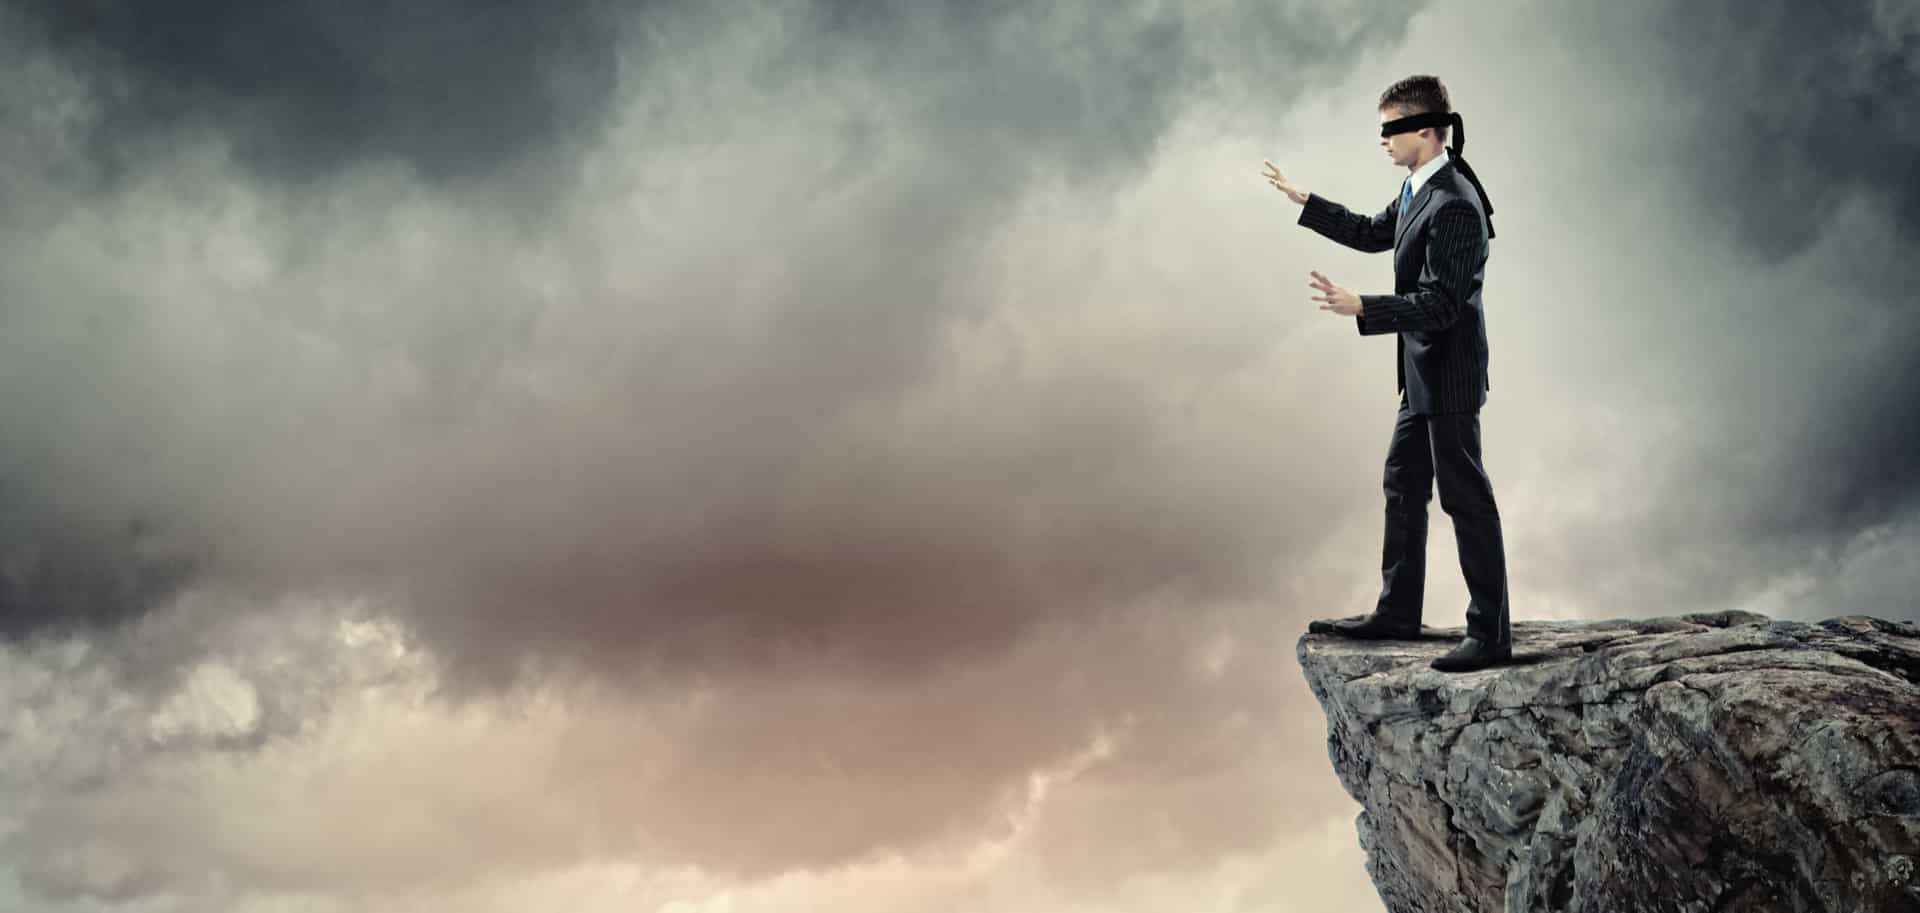 Man with blindfold stands on edge of cliff